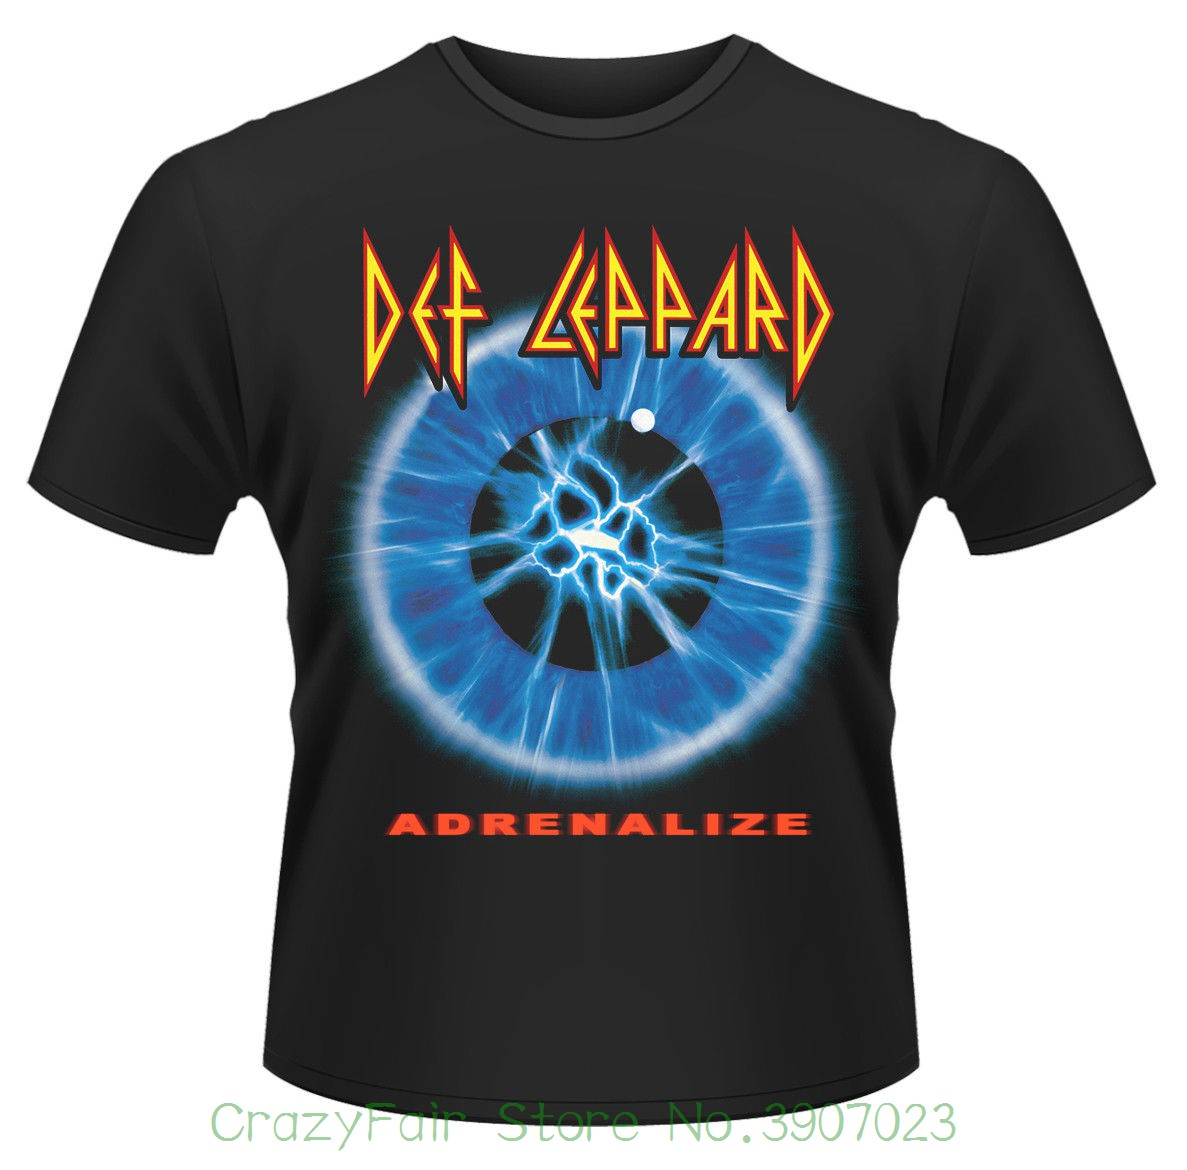 Def Leppard adrenalize T-shirt - Nuevo Y Oficial Funny Tee Shirt Hipster Summer